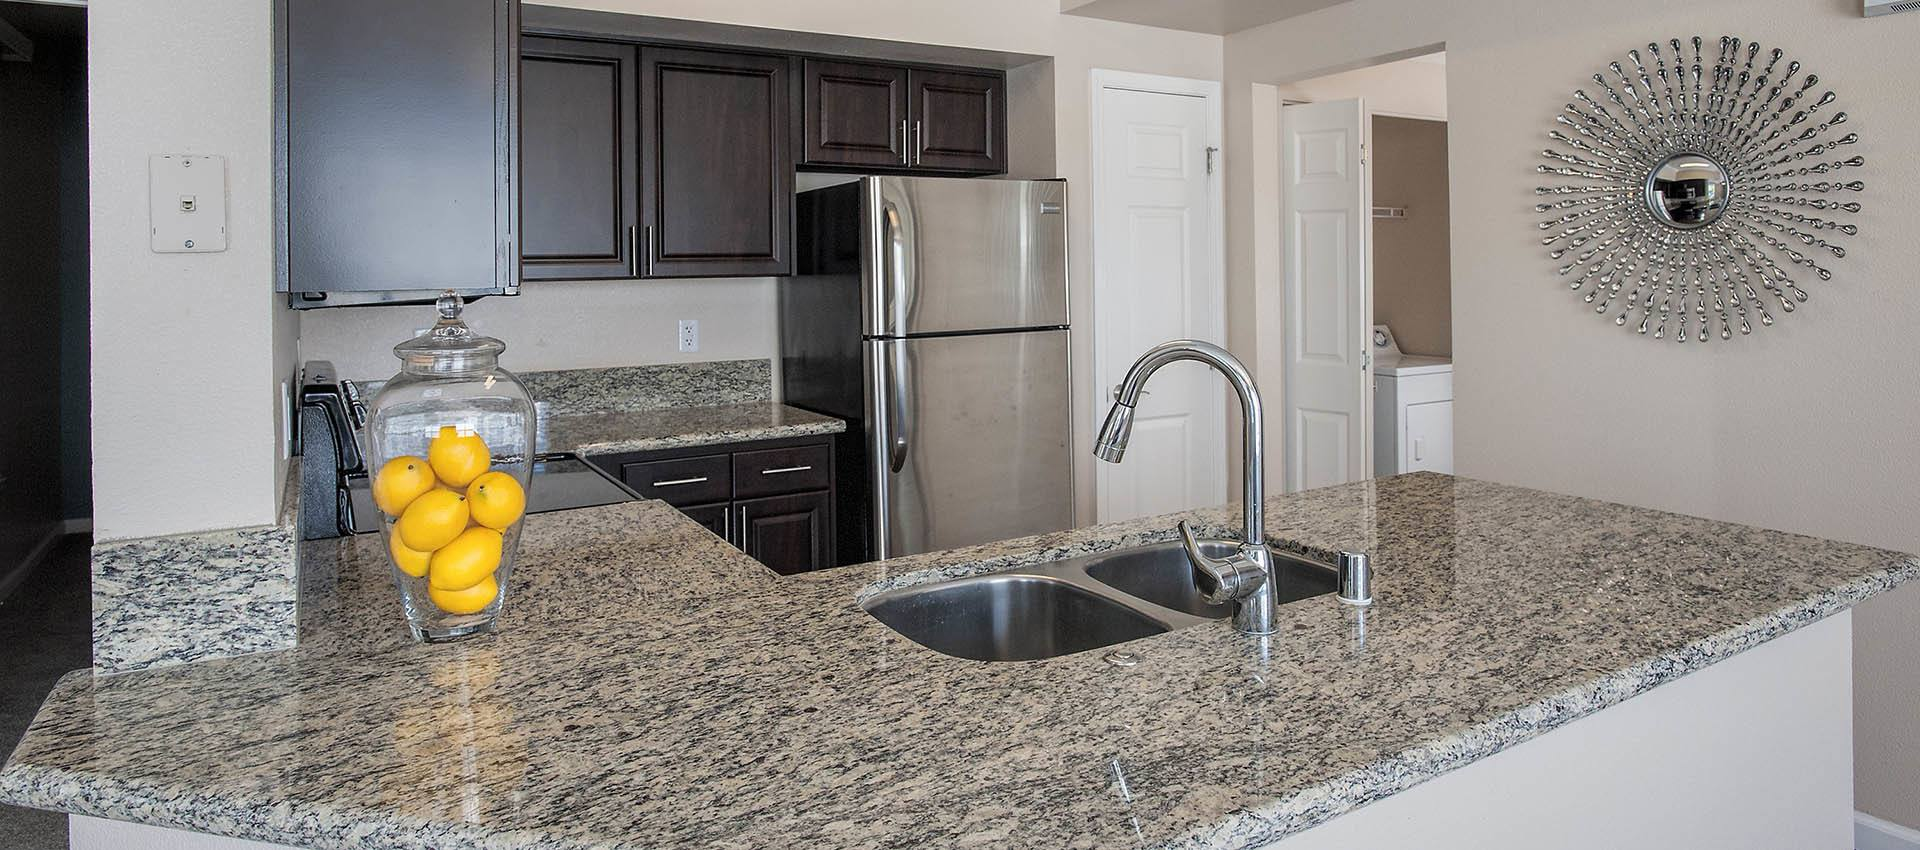 luxury kitchen at The Vintage at South Meadows Condominium Rentals in Reno